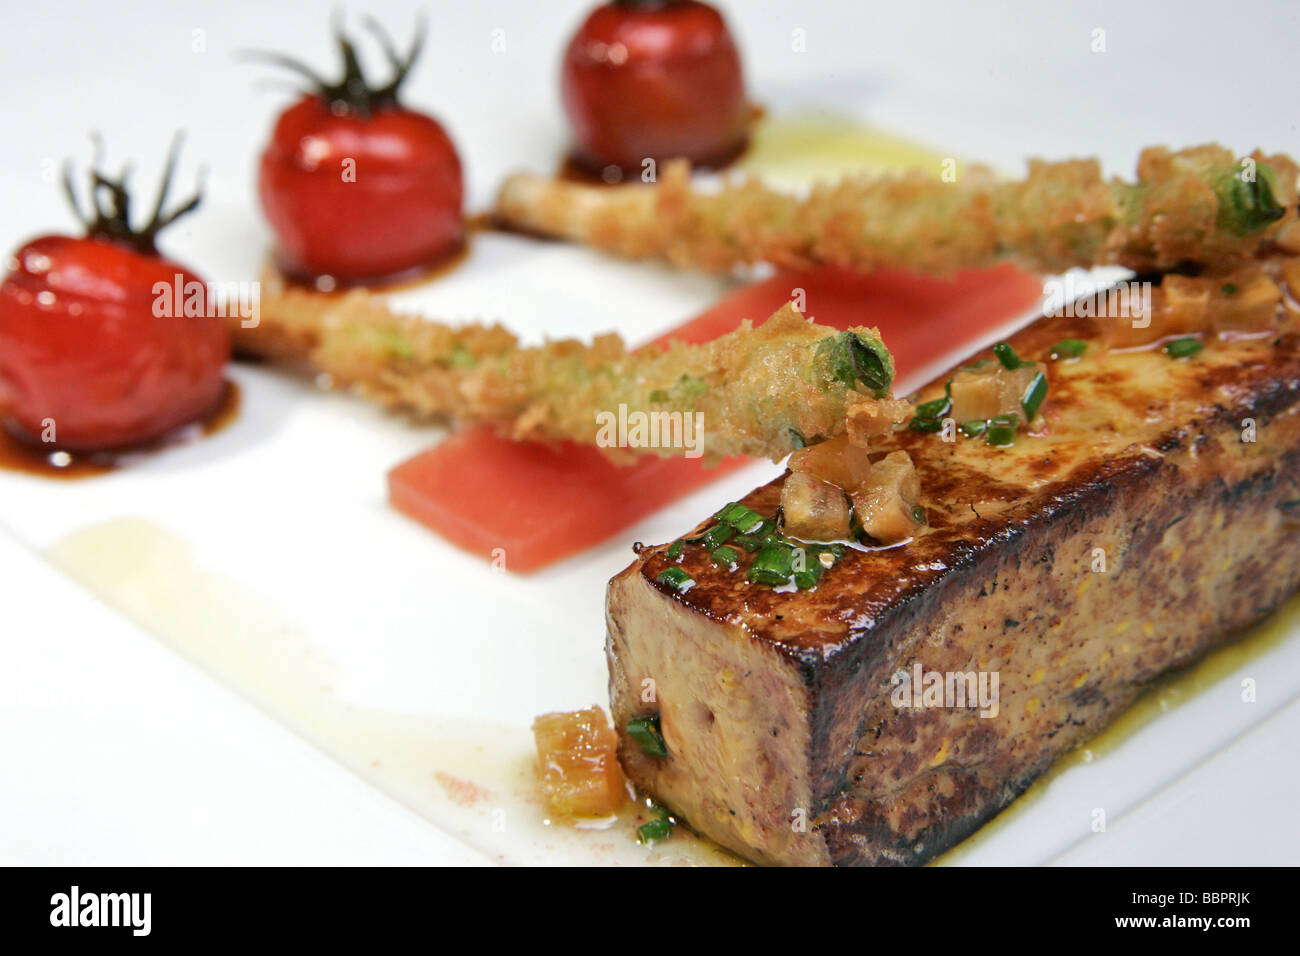 how to cook foie gras pate